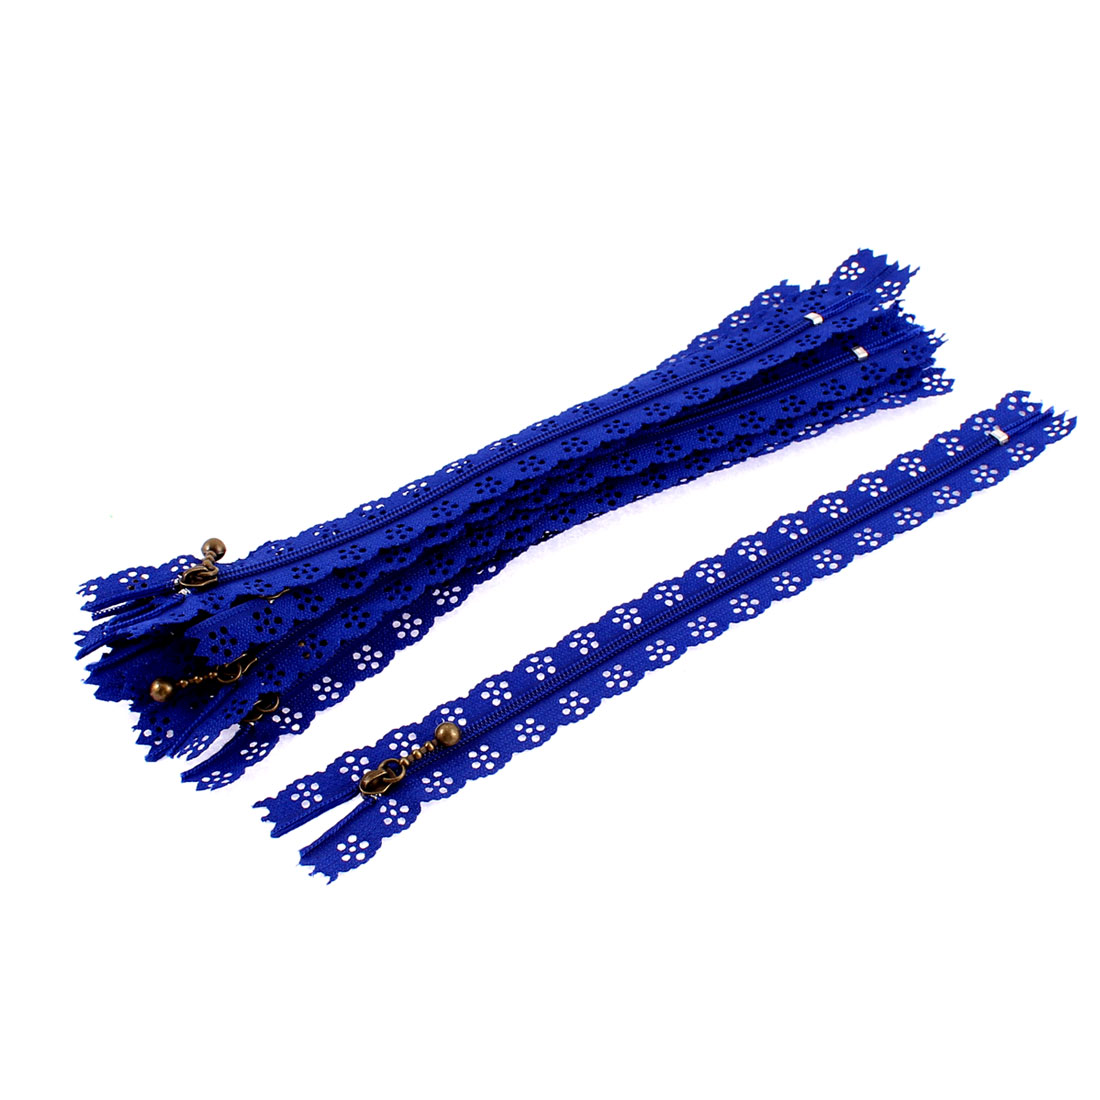 10 Pcs Blue Nylon Lace Edged Closed End Sewing Zipper Zip